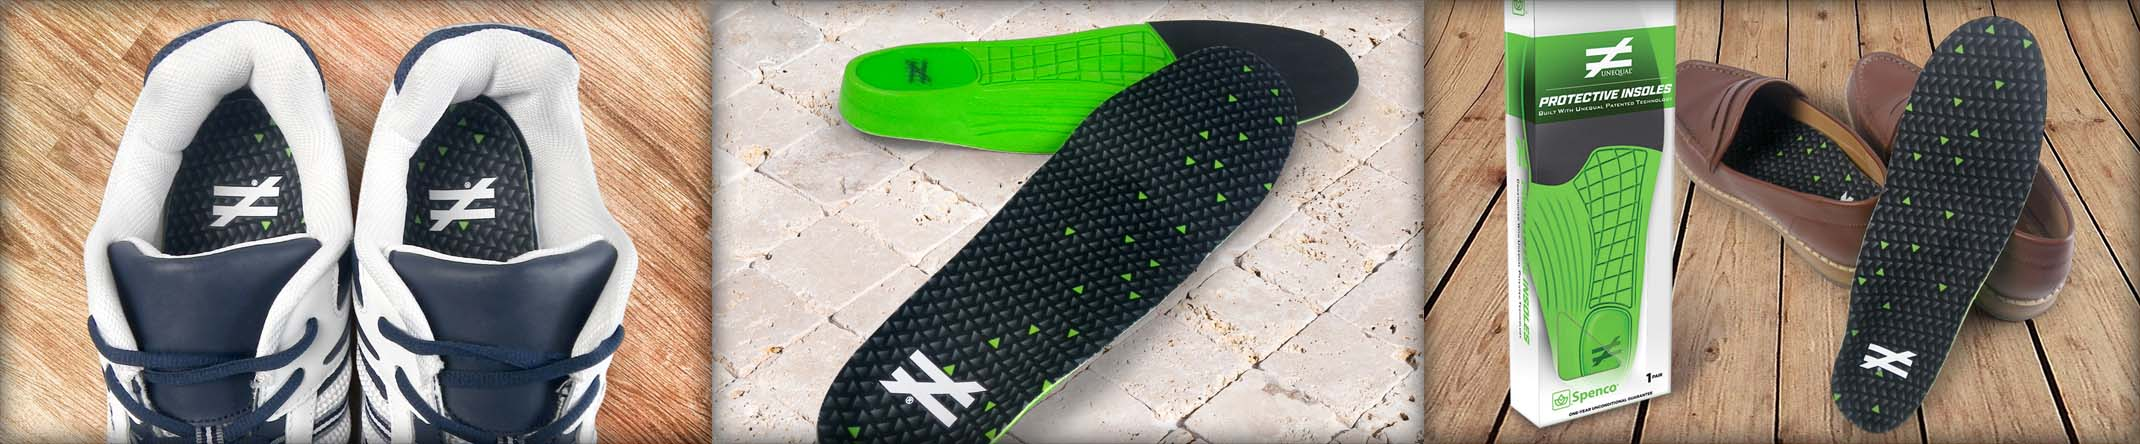 pro-athlete-cushioning-insole-protection